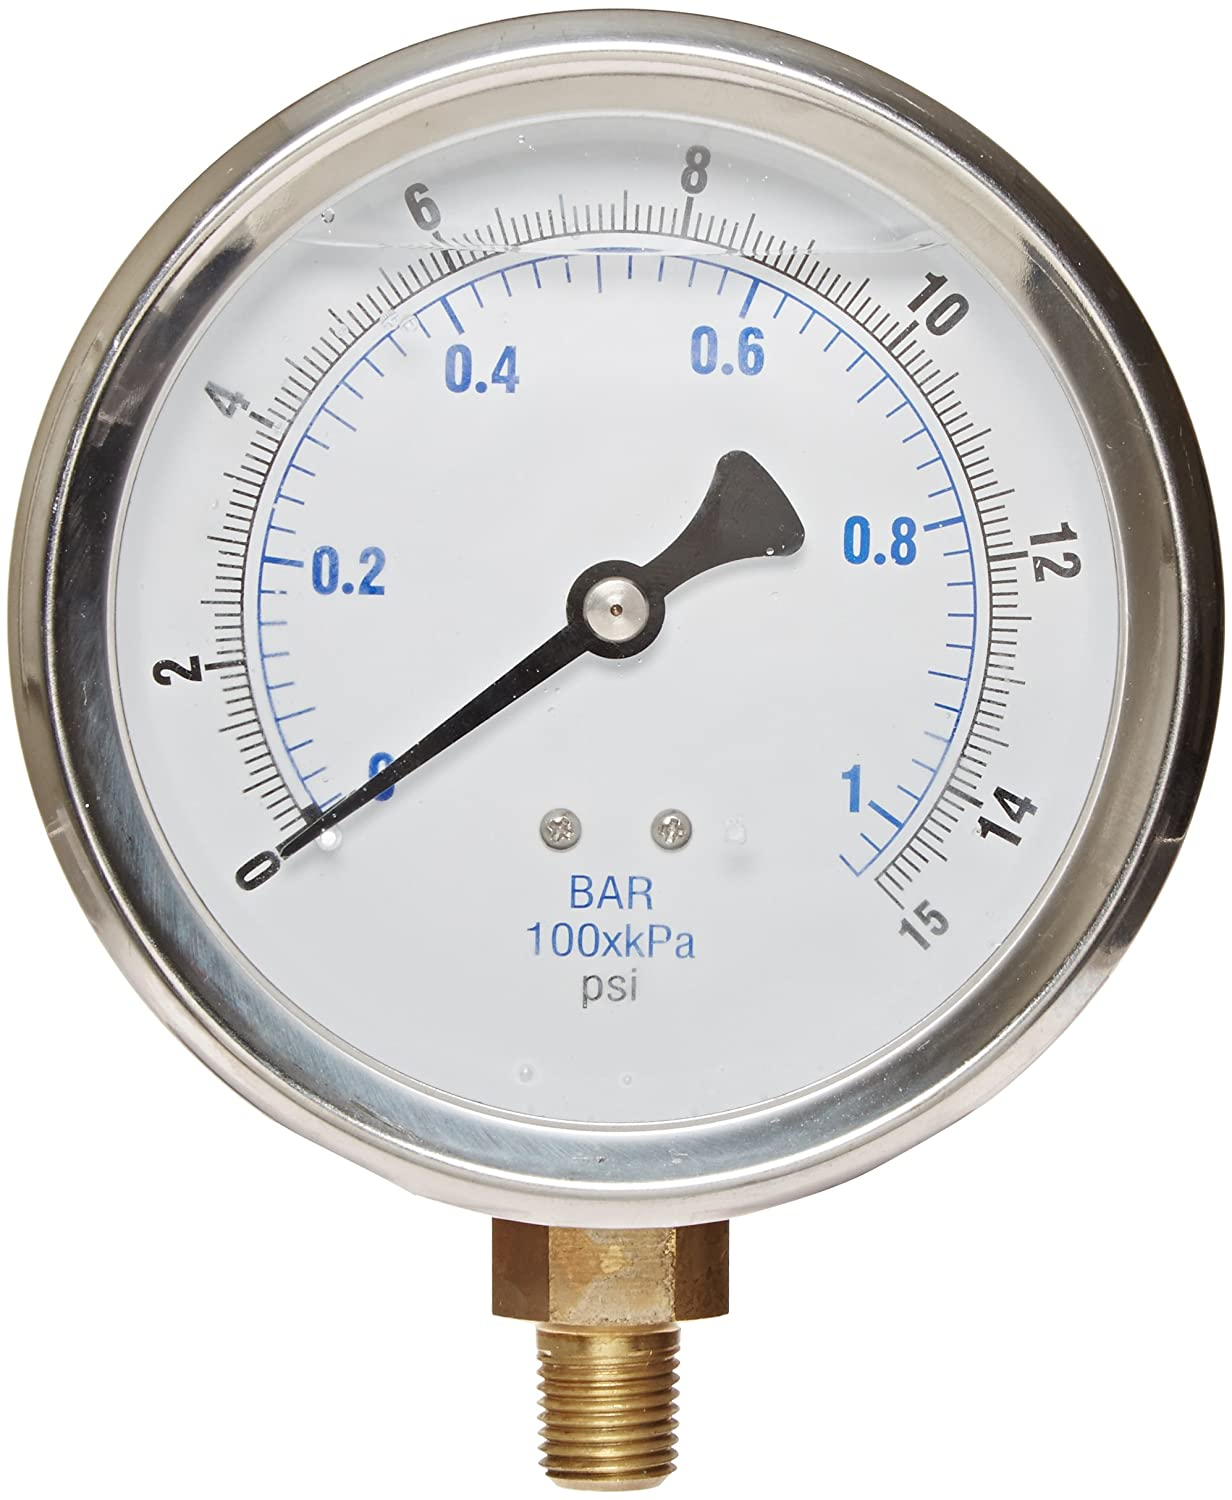 PIC Gauge 201L 404B 4 Dial 0 15 psi Range 1 4 Male NPT Connection Size Bottom Mount Glycerine Filled Pressure Gauge with a Stainless Steel Case Brass Internals Stainless Steel Bezel and Polycarbonate Lens